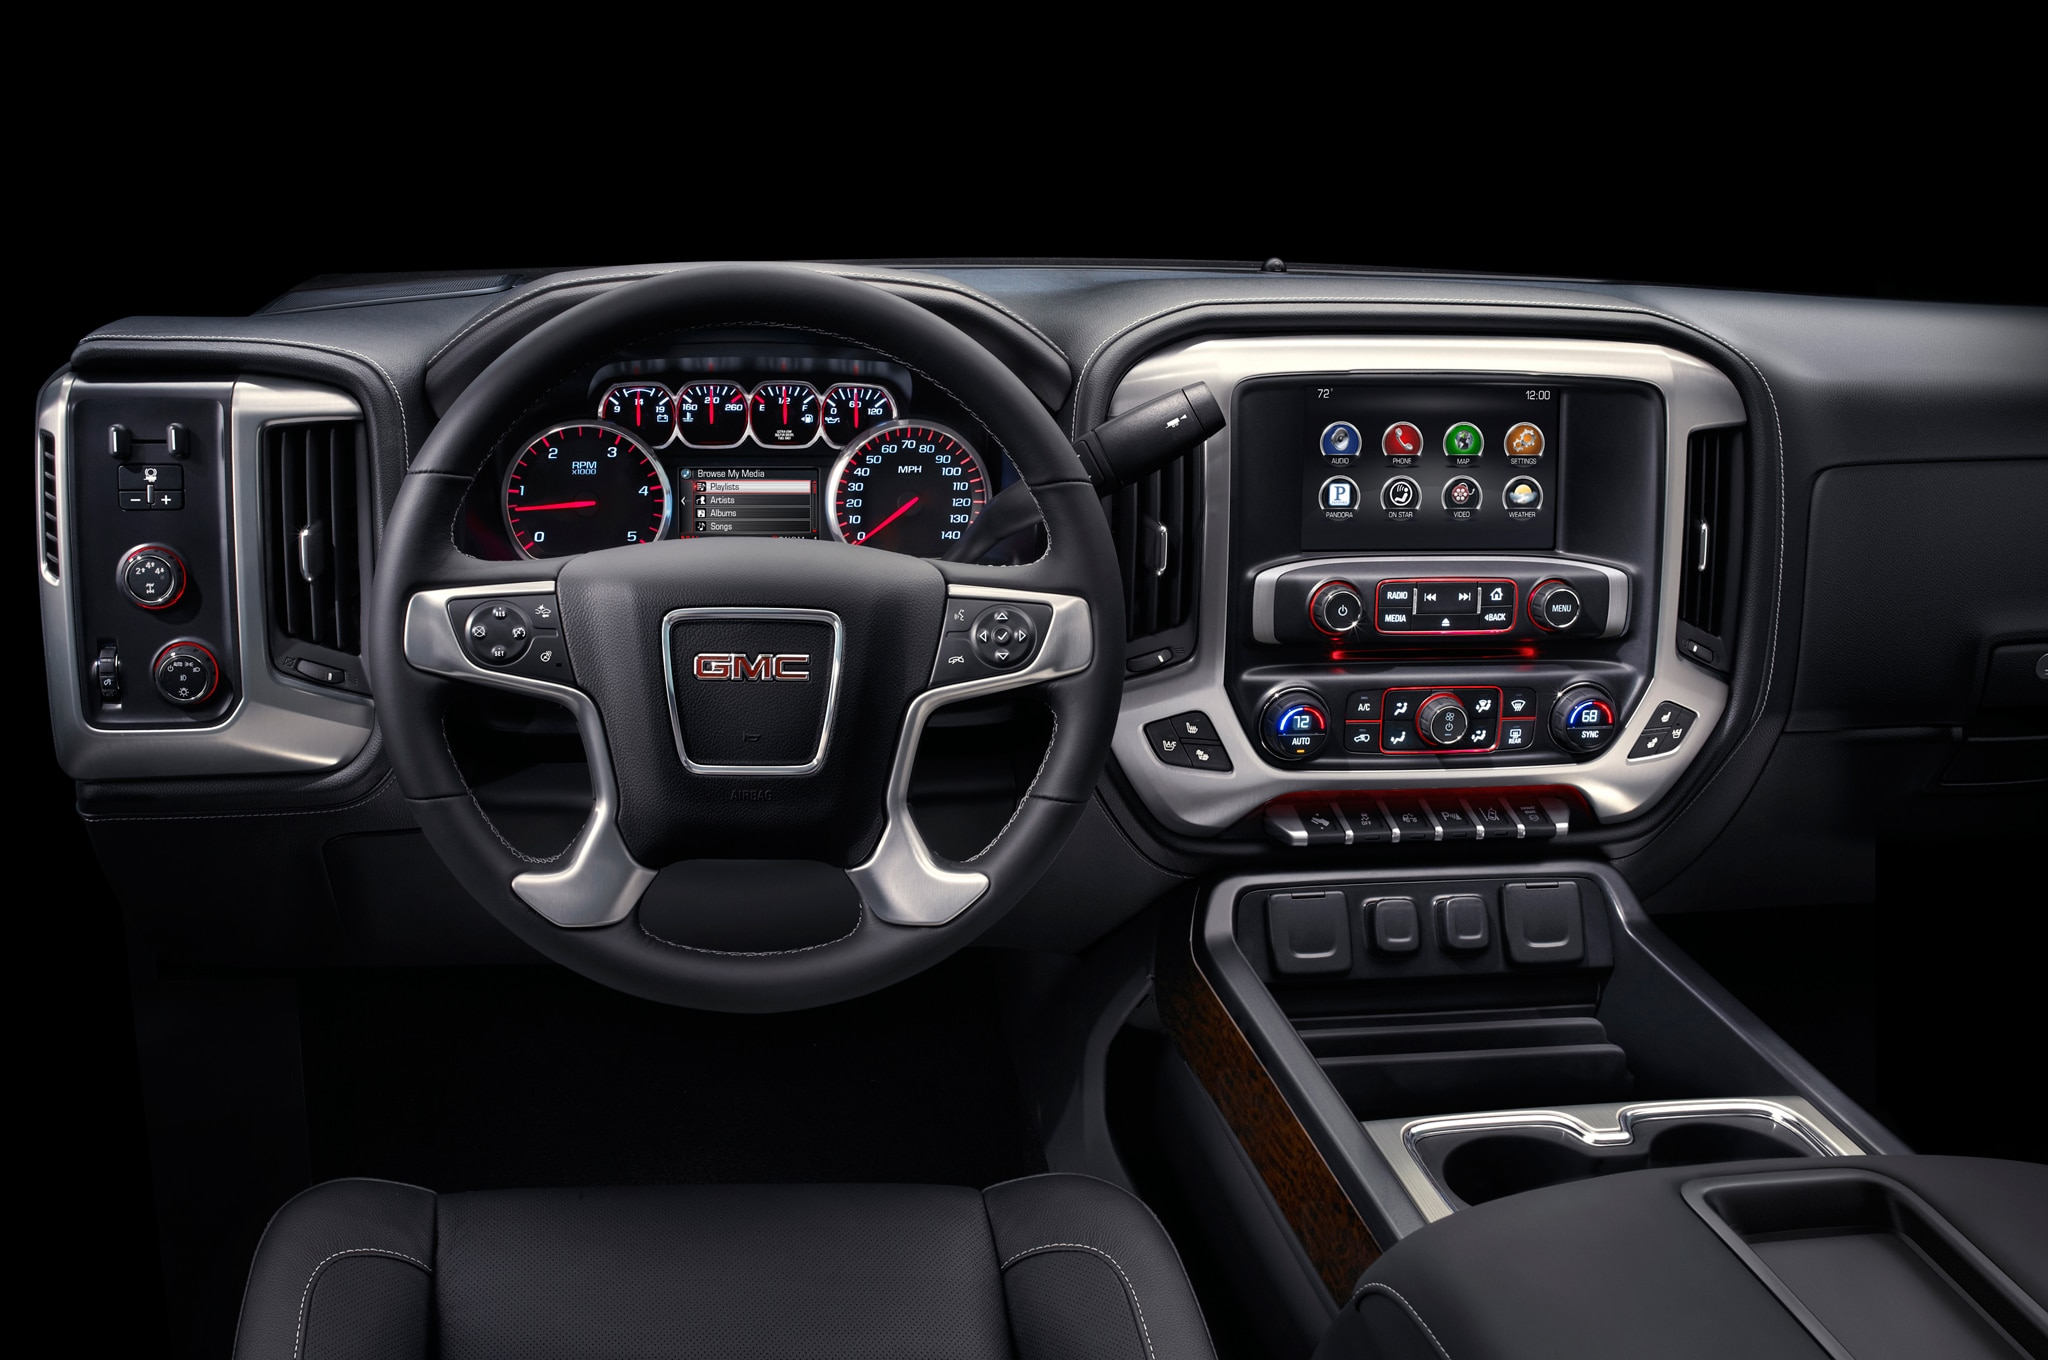 chevrolet trucks 2015 inside. greg migliore chevrolet trucks 2015 inside